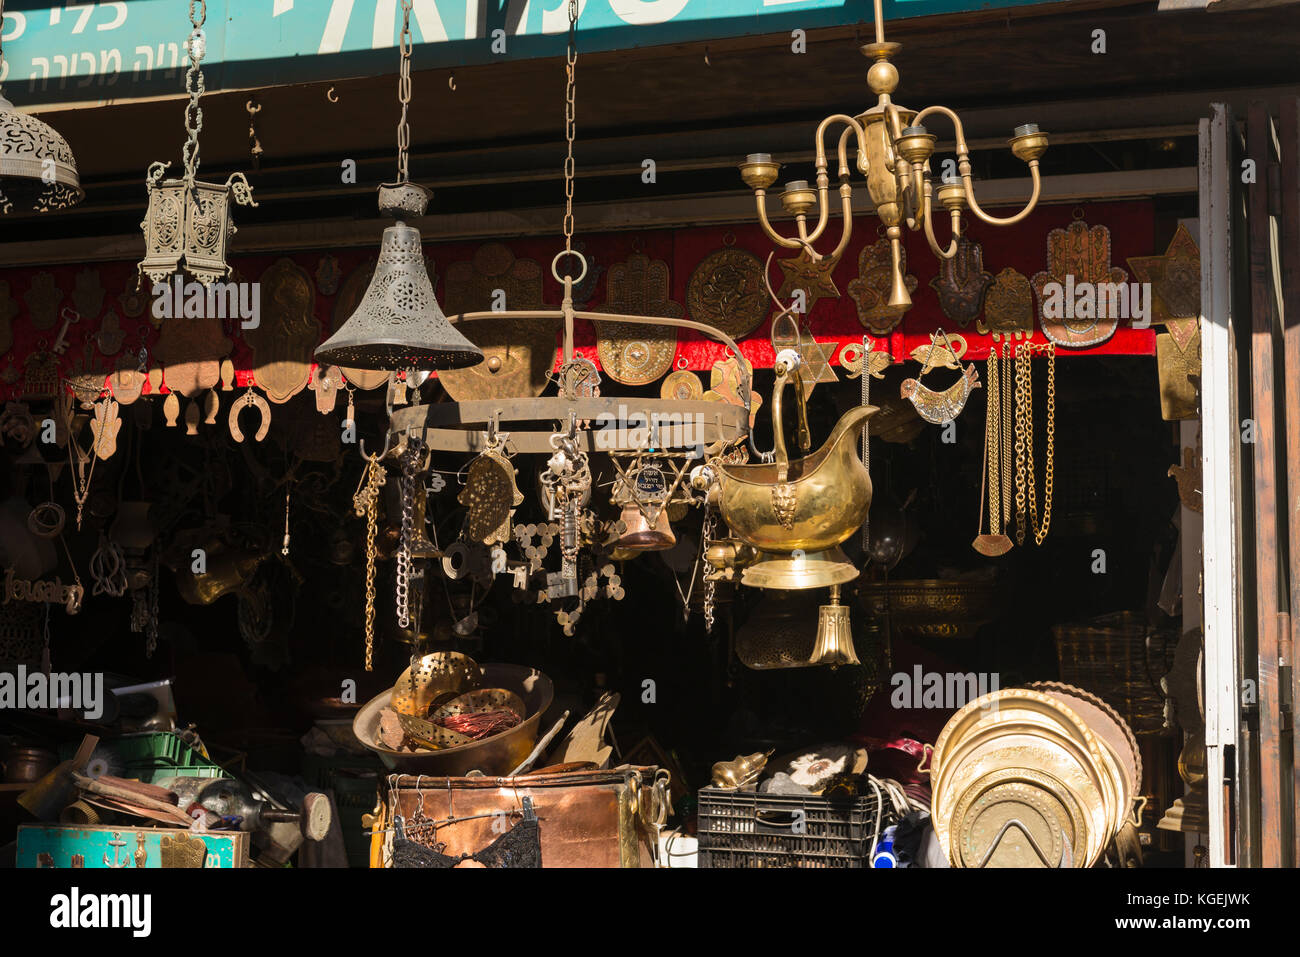 Israel The Holy Land Tel Aviv Jaffa Yafo old market traditional old traditional brass collectables candelabras lights - Stock Image